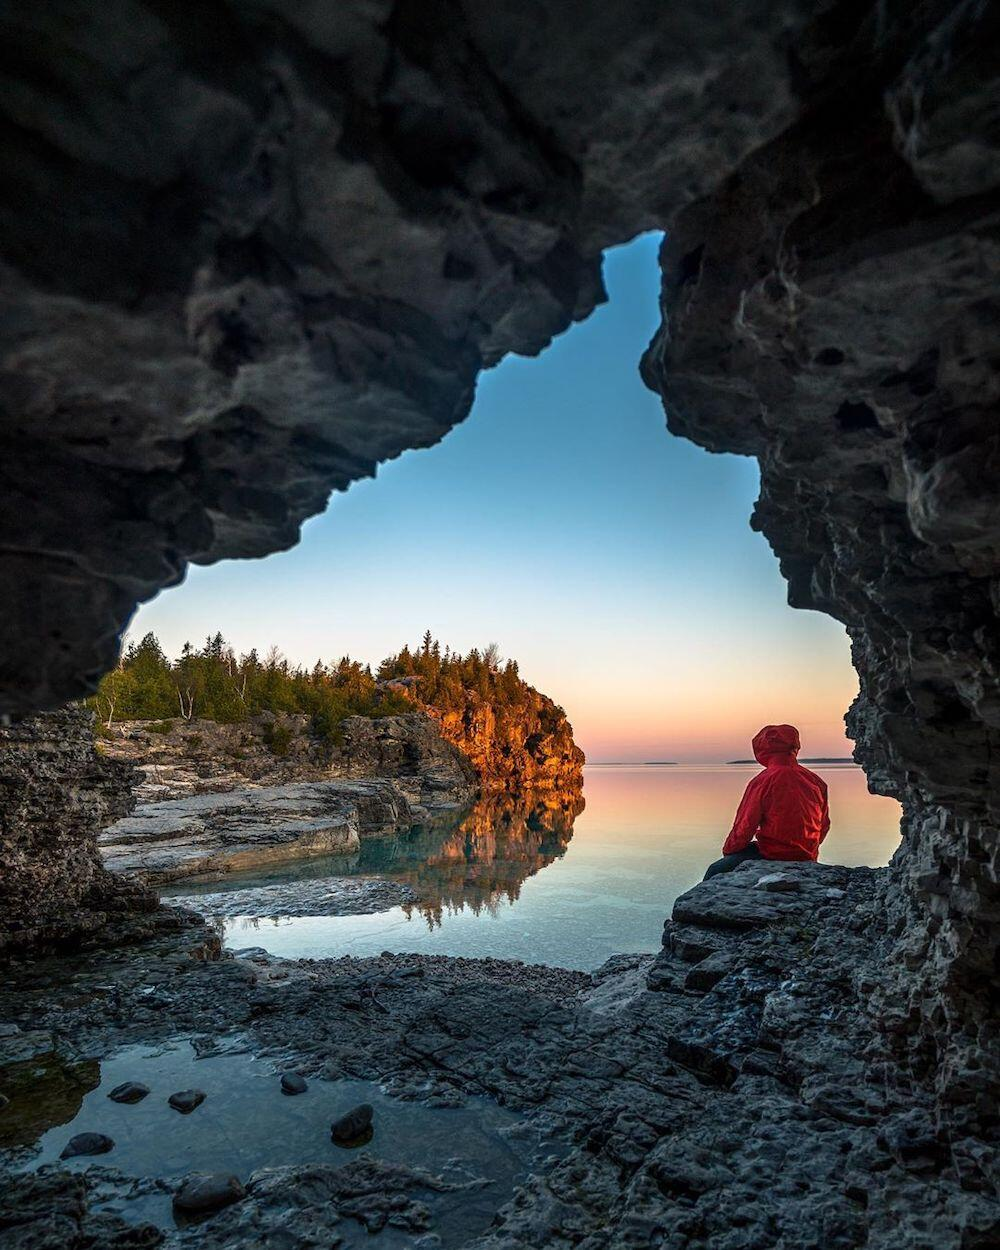 Person sitting in cave next to a lake